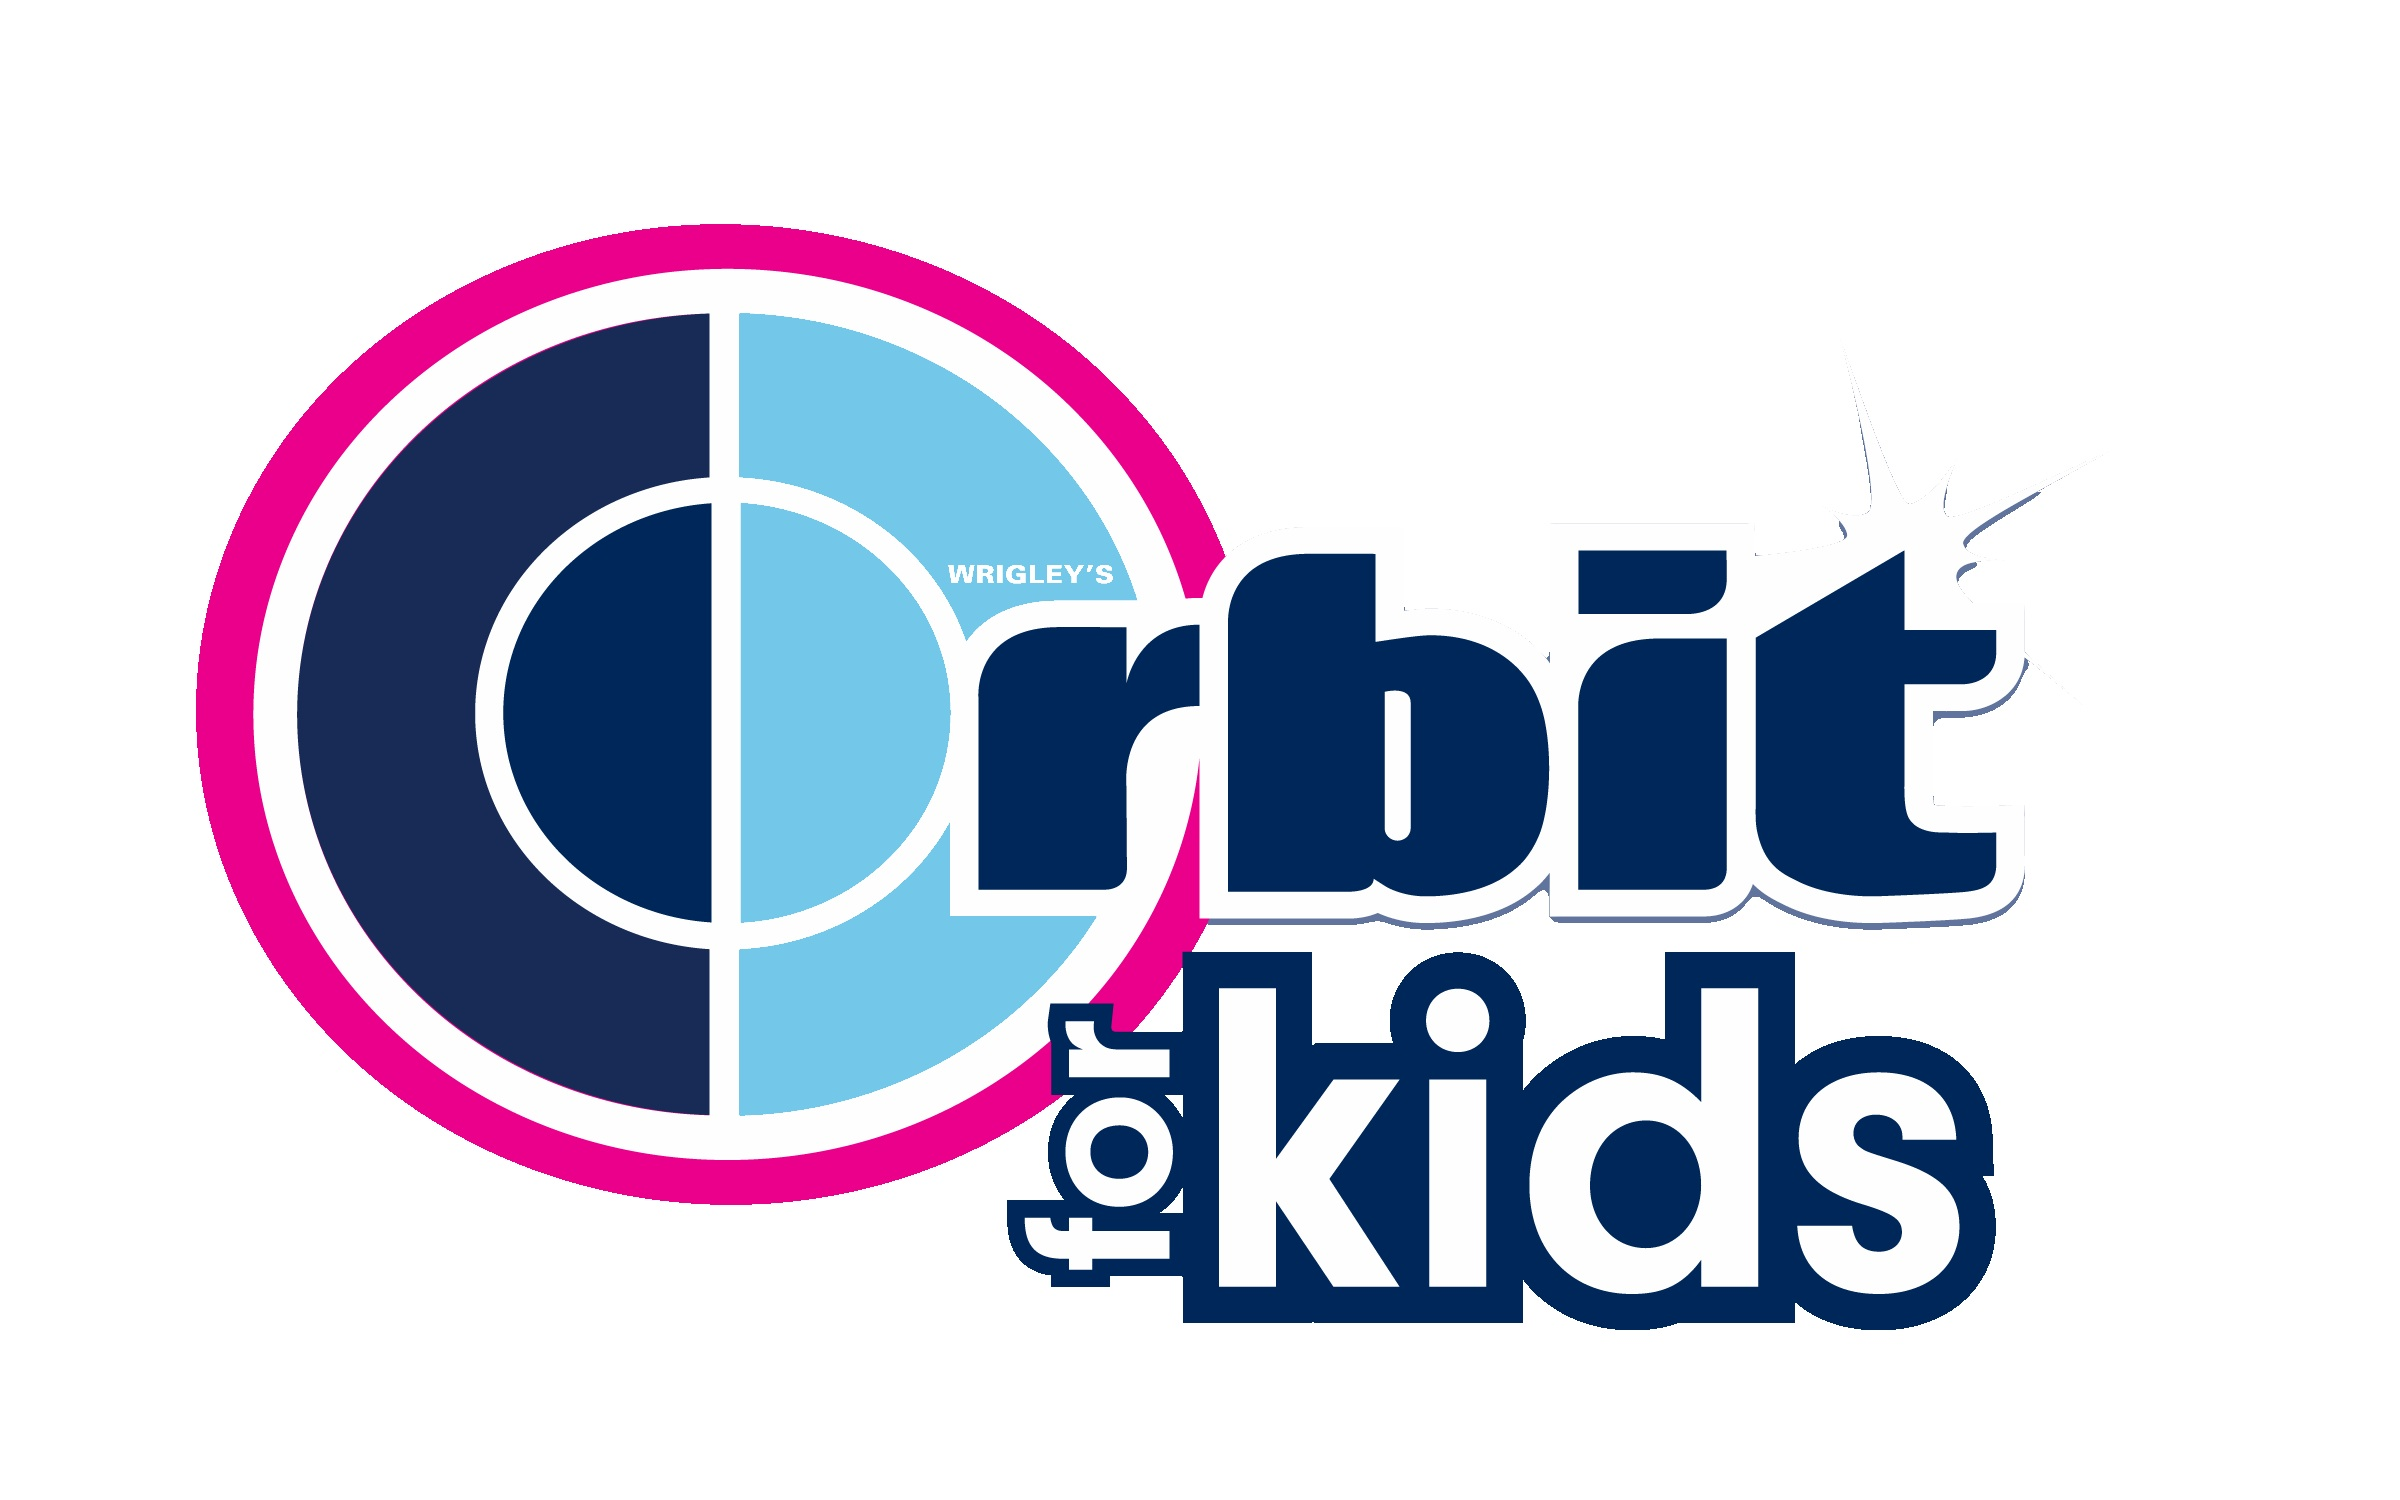 Orbit+for+Kids+logo